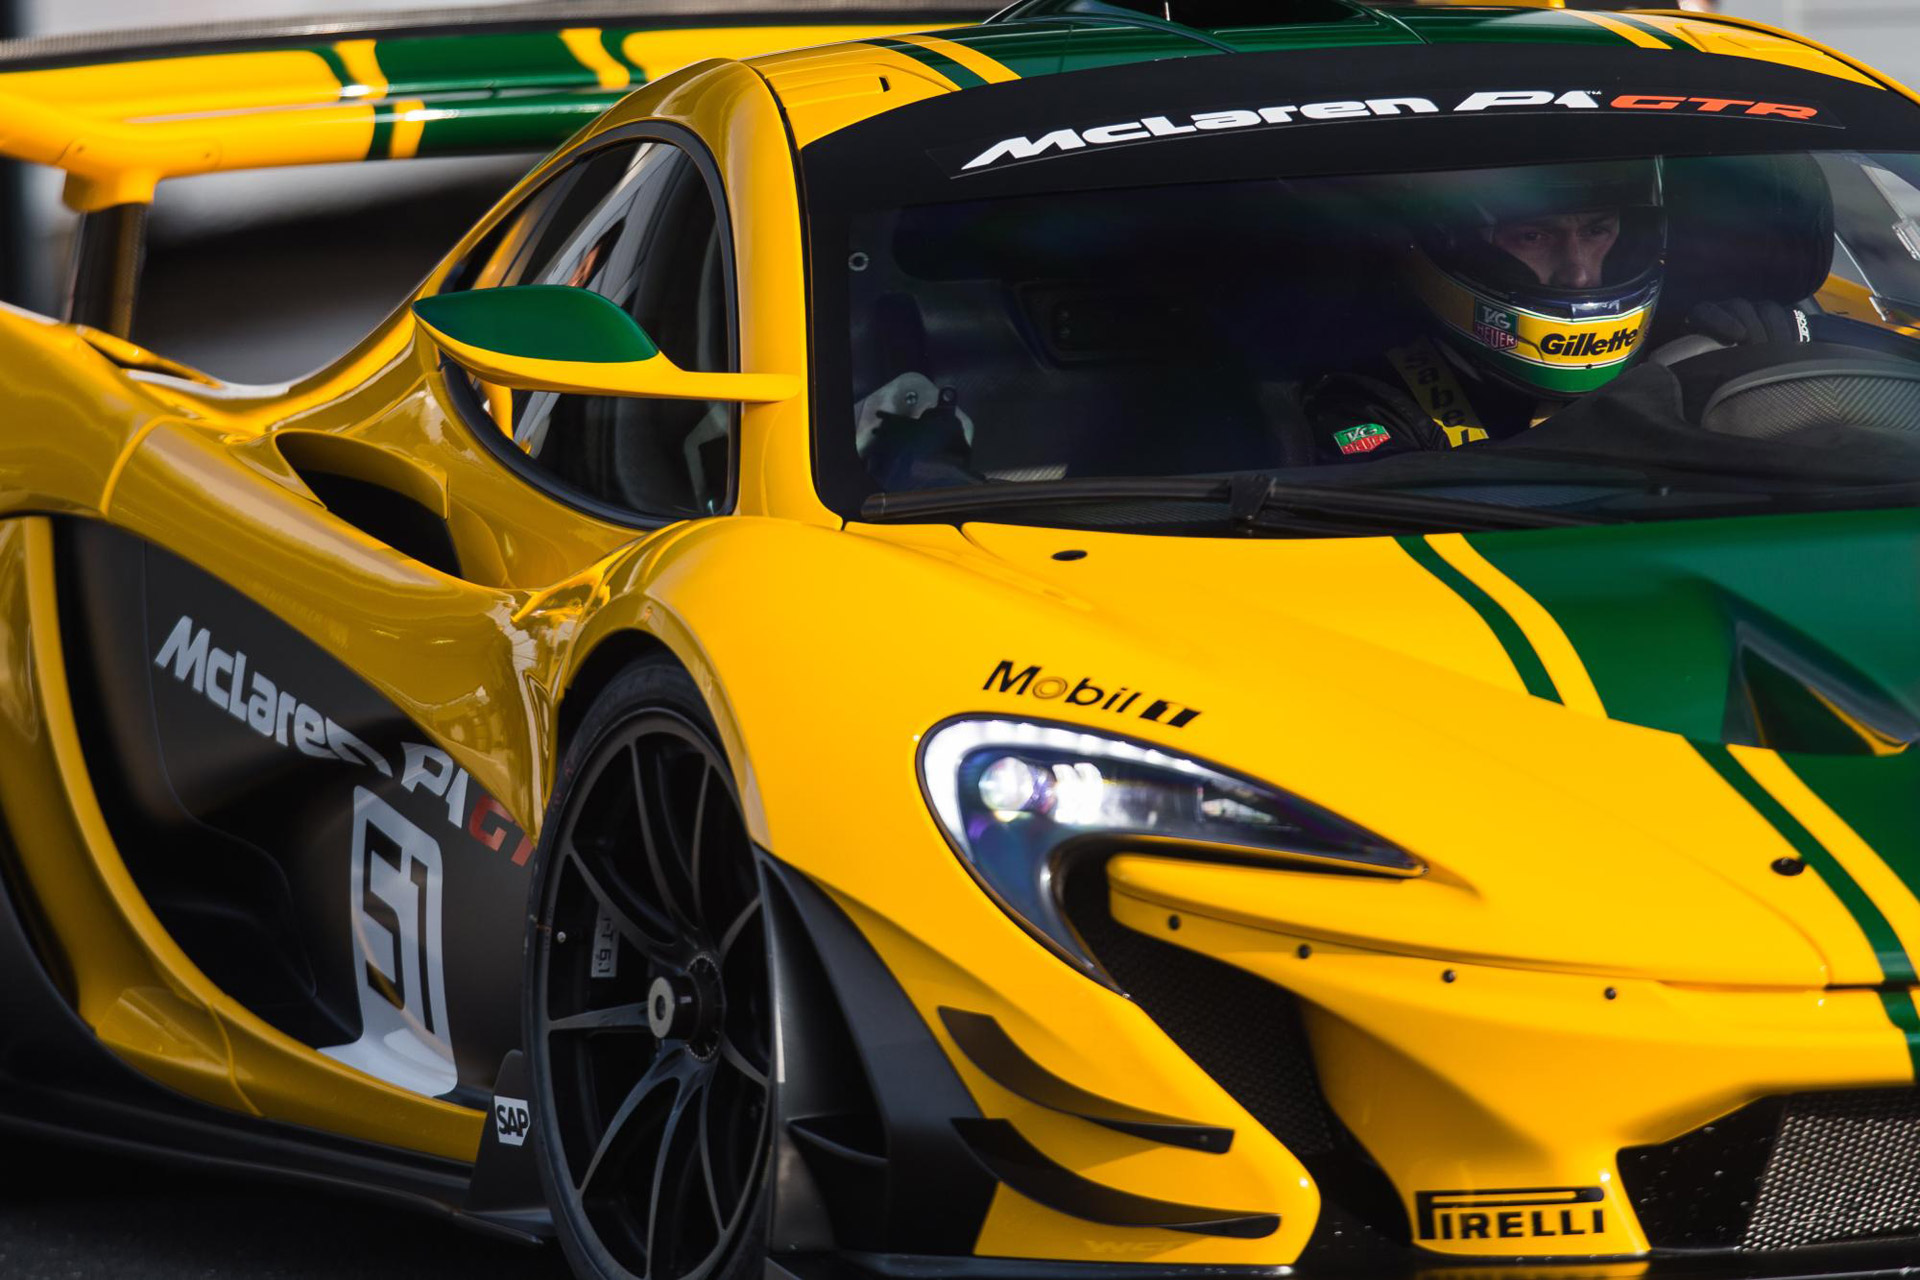 Bruno Senna Confirmed As Instructor In Mclaren P1 Gtr